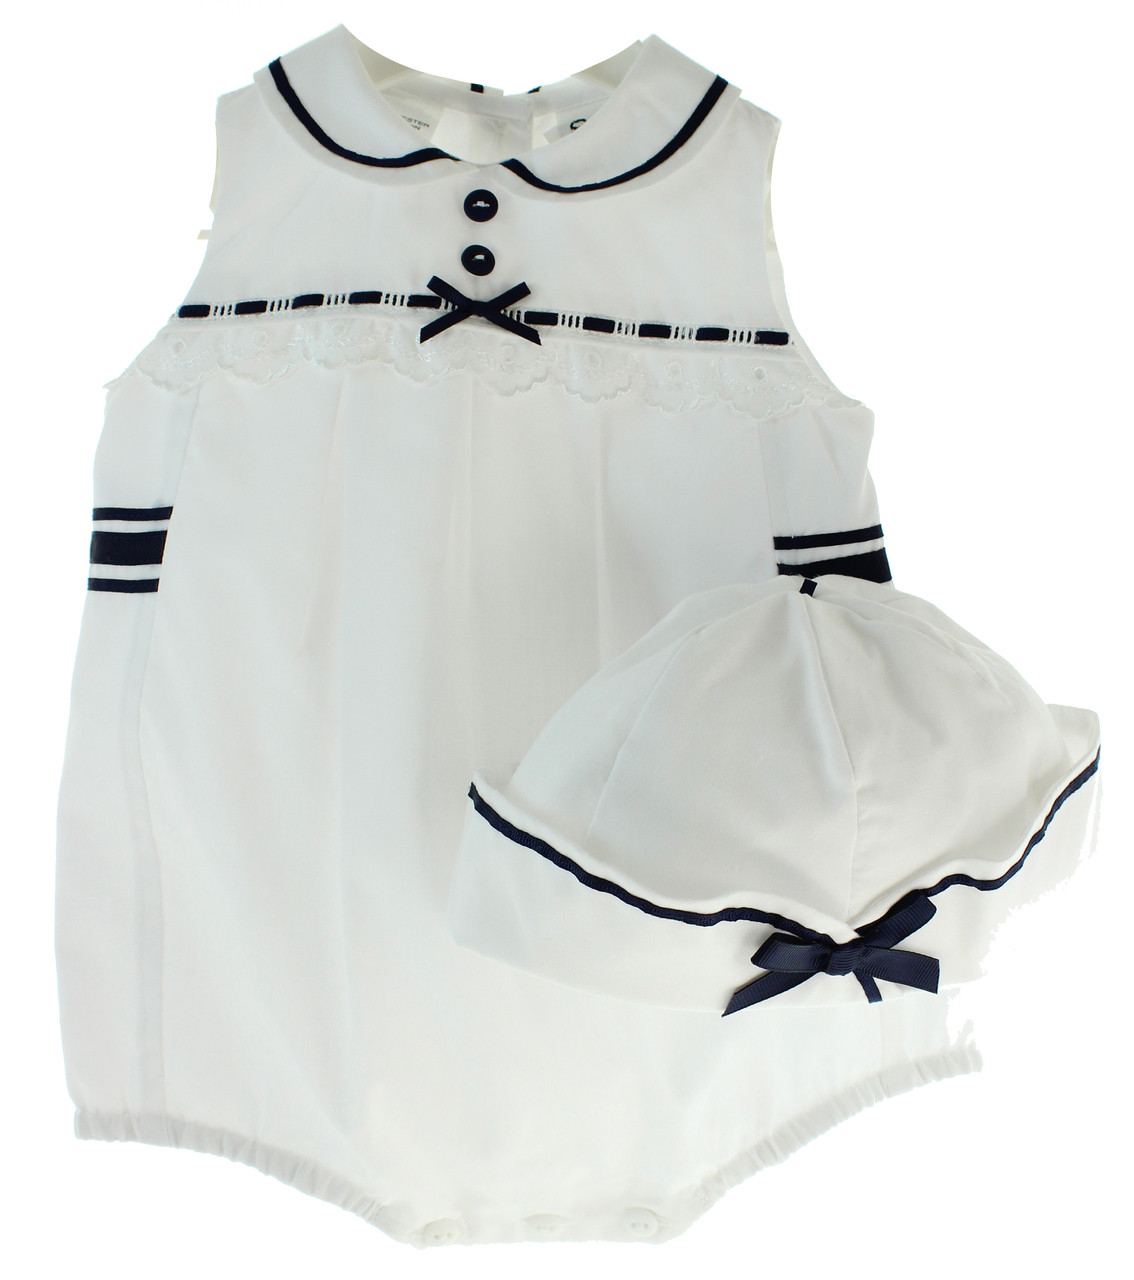 6d12e45c5 Sarah Louise Girls Sailor Bubble Outfit Navy White. Click to enlarge